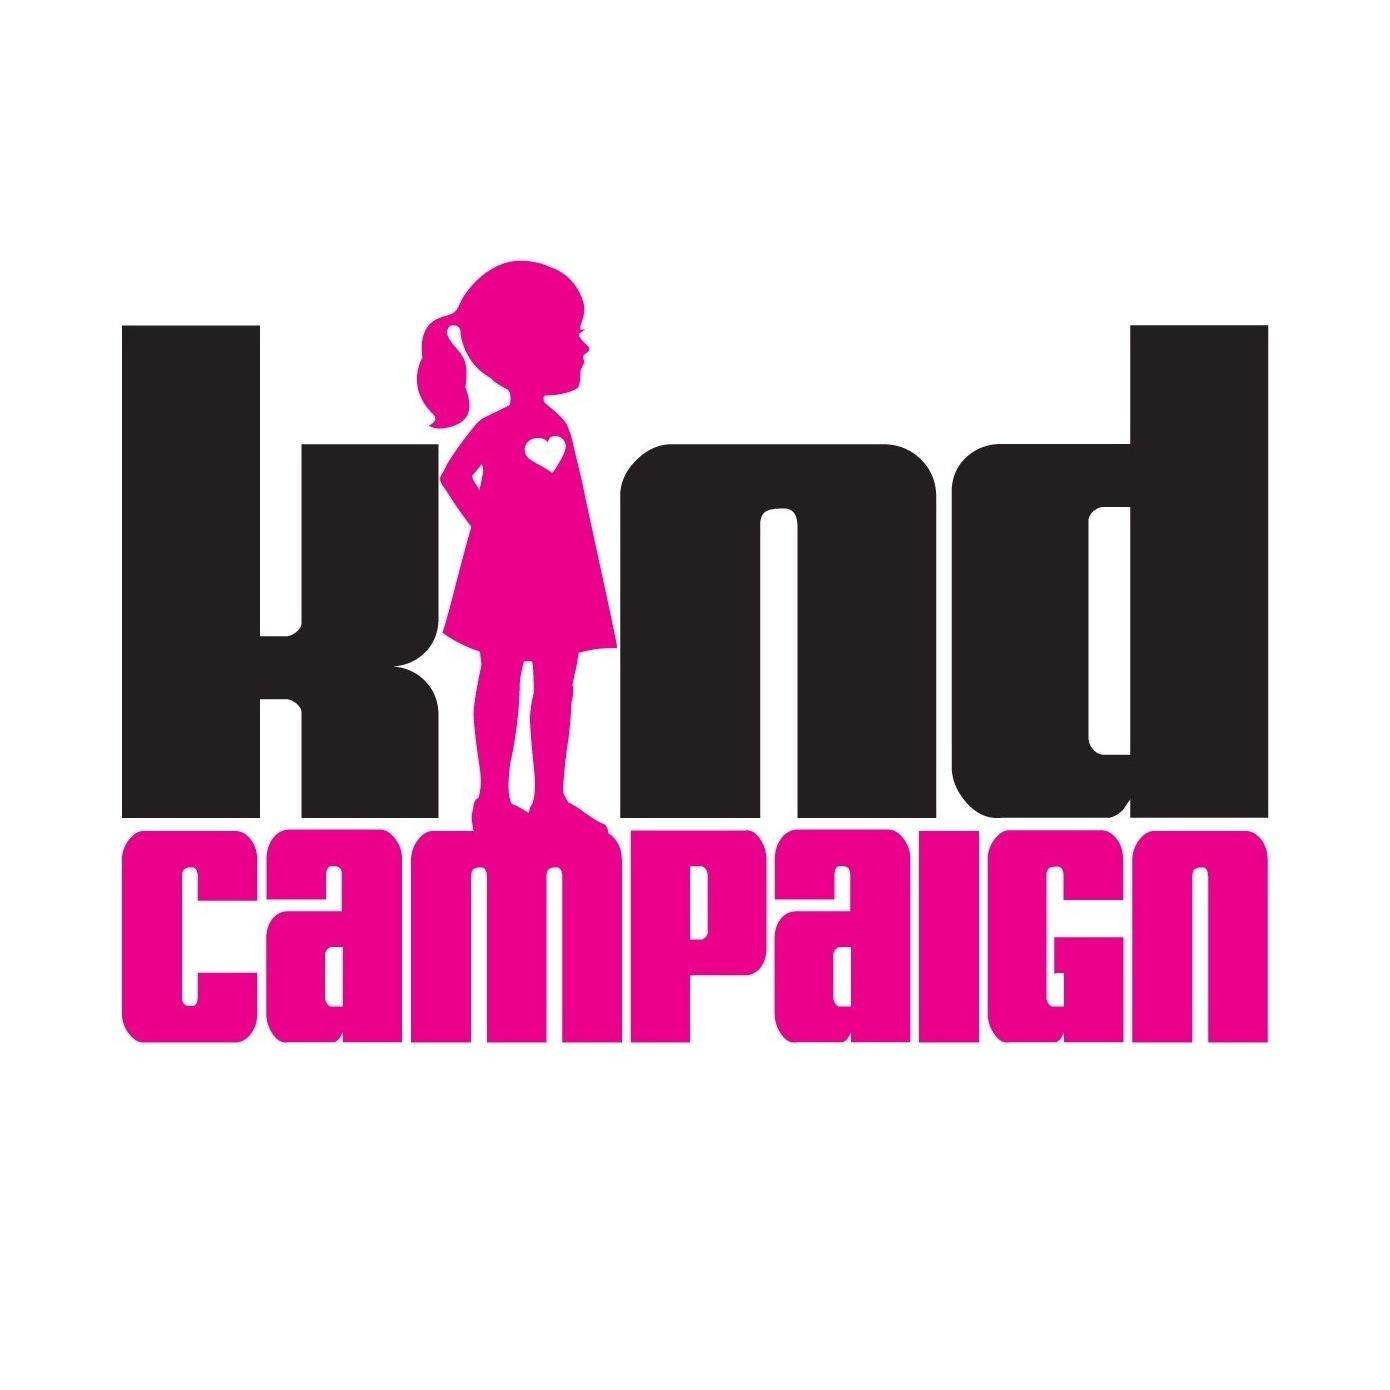 Kind Campaign: A Motion to Stop Bullying